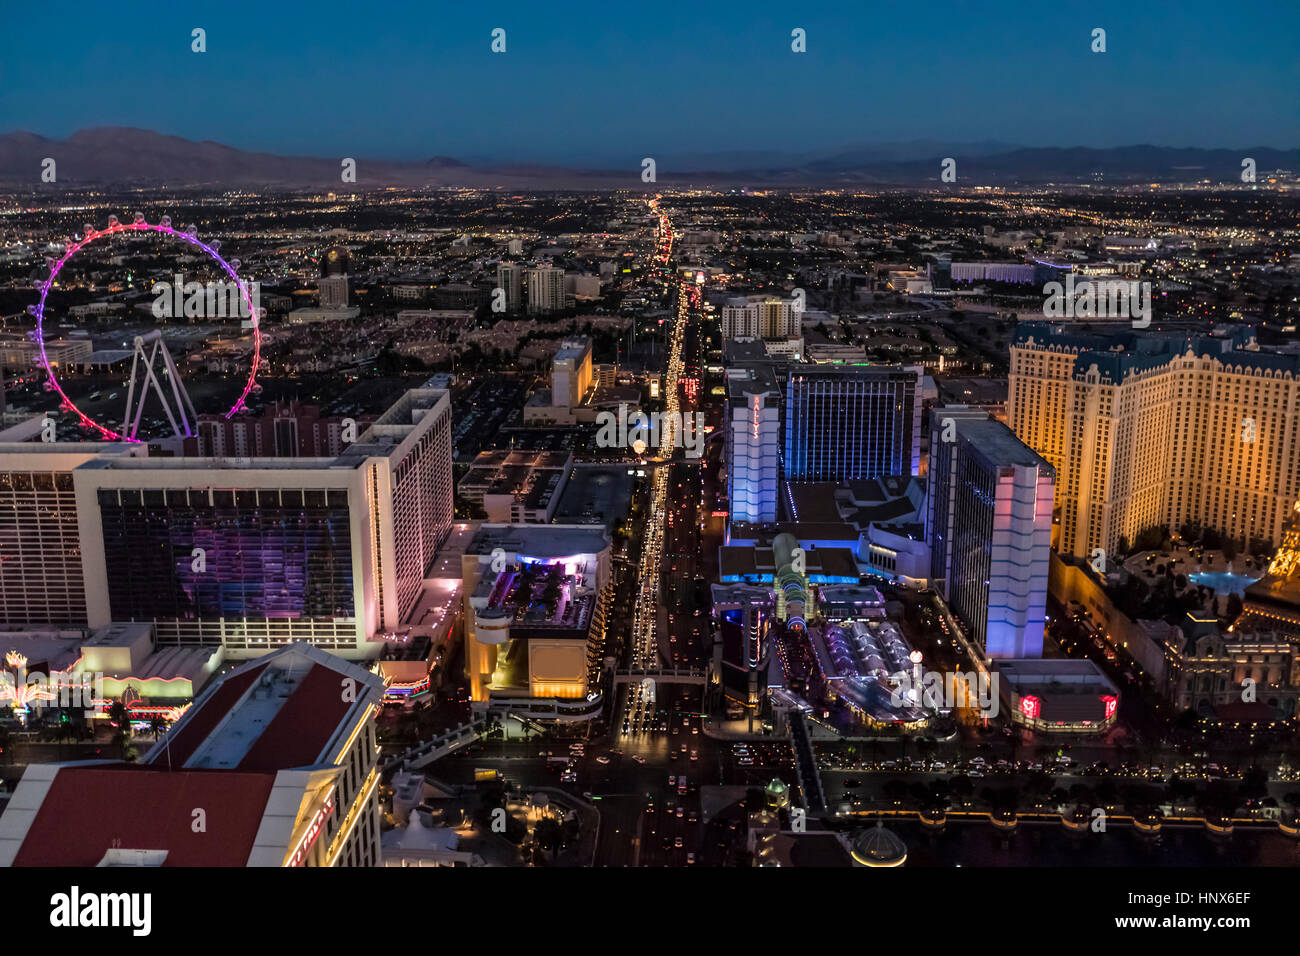 La bande le soir, Las Vegas, Nevada, USA Photo Stock